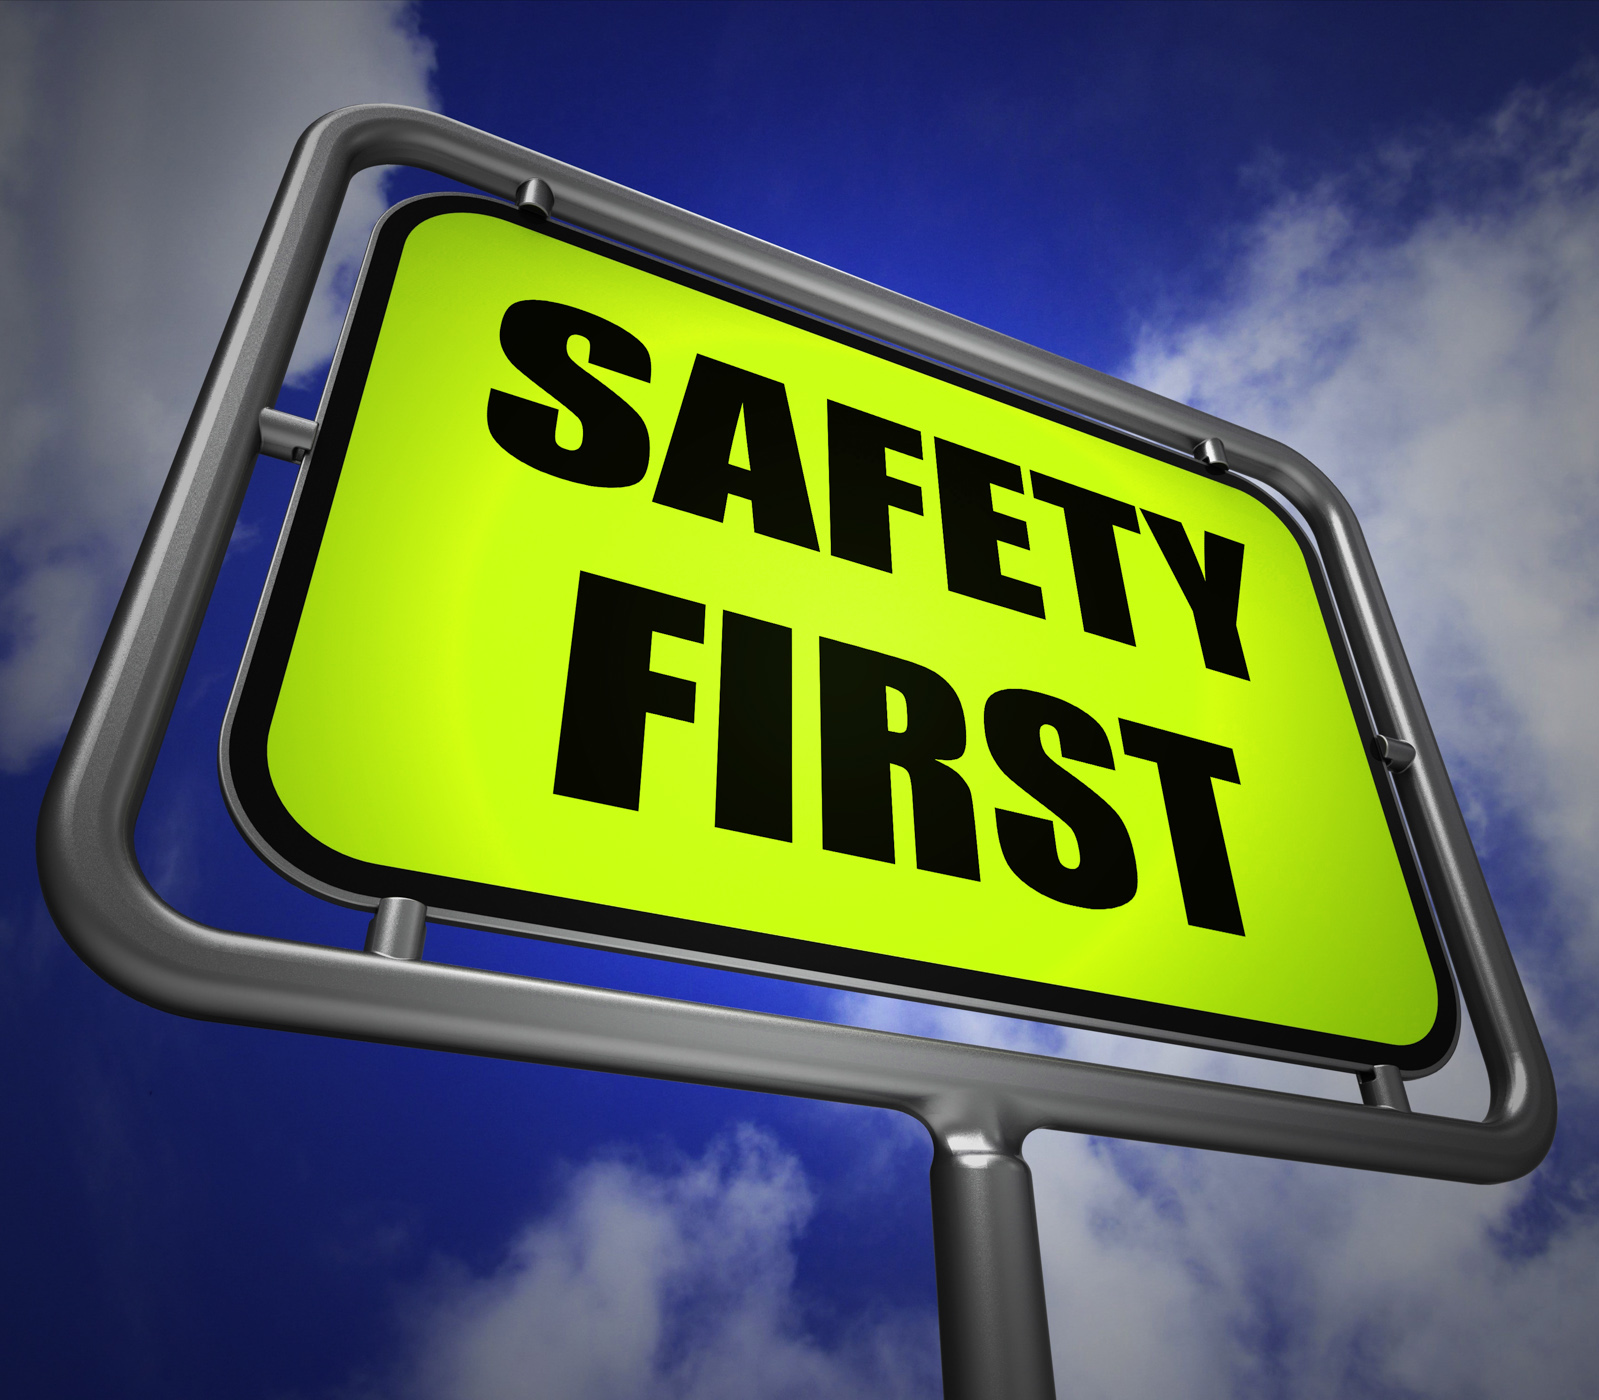 Safety first signpost indicates prevention preparedness and security photo